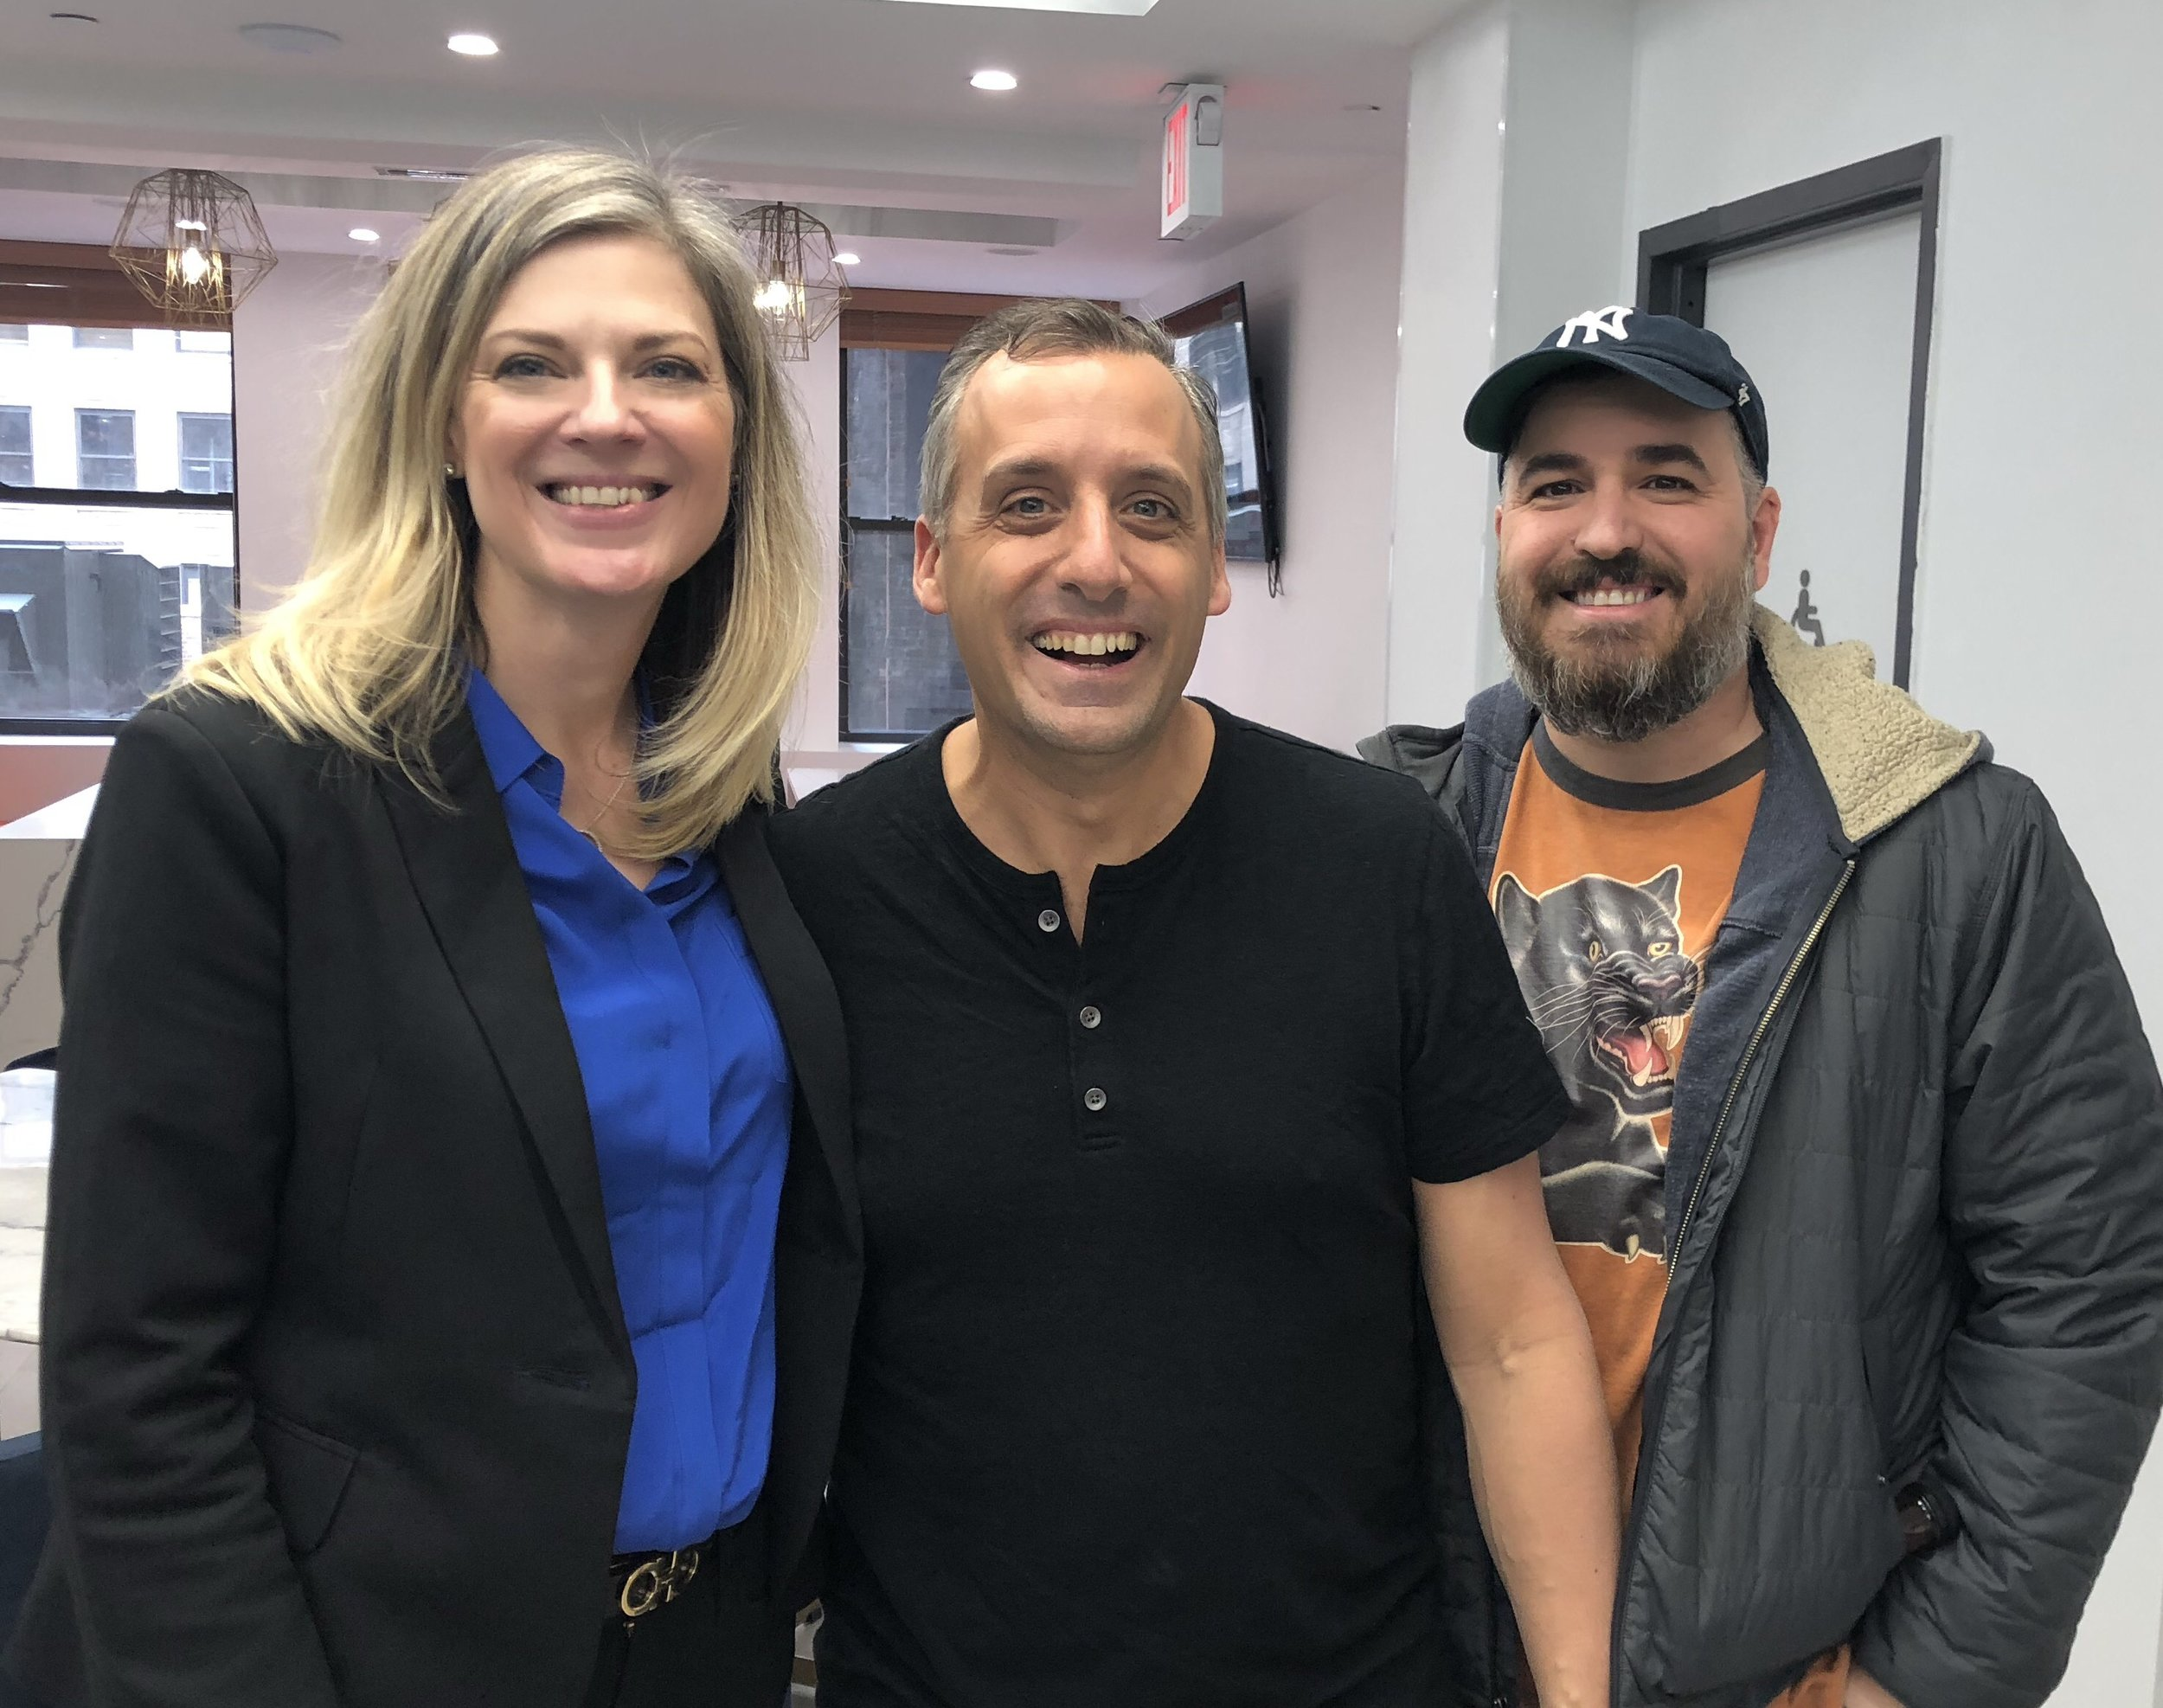 Me with Impractical Jokers Joe and Q.